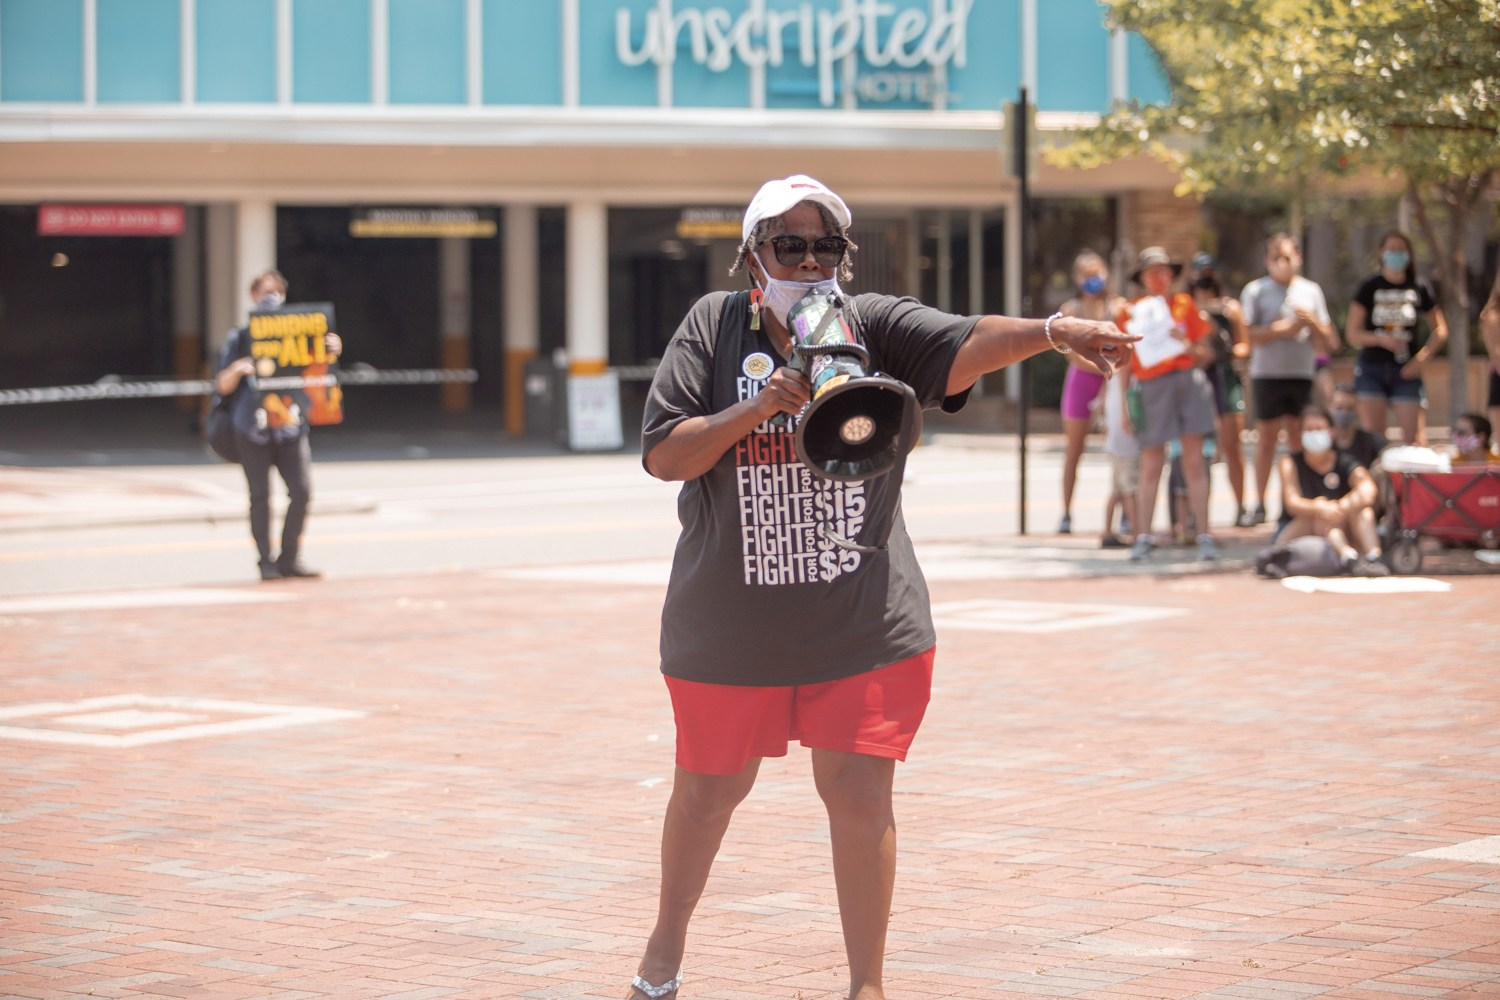 Mama Cookie, July 20, 2021 strike in Durham, NC. She holds a mega phone, wearing a black, Fight for $15 t-shirt and red shorts.